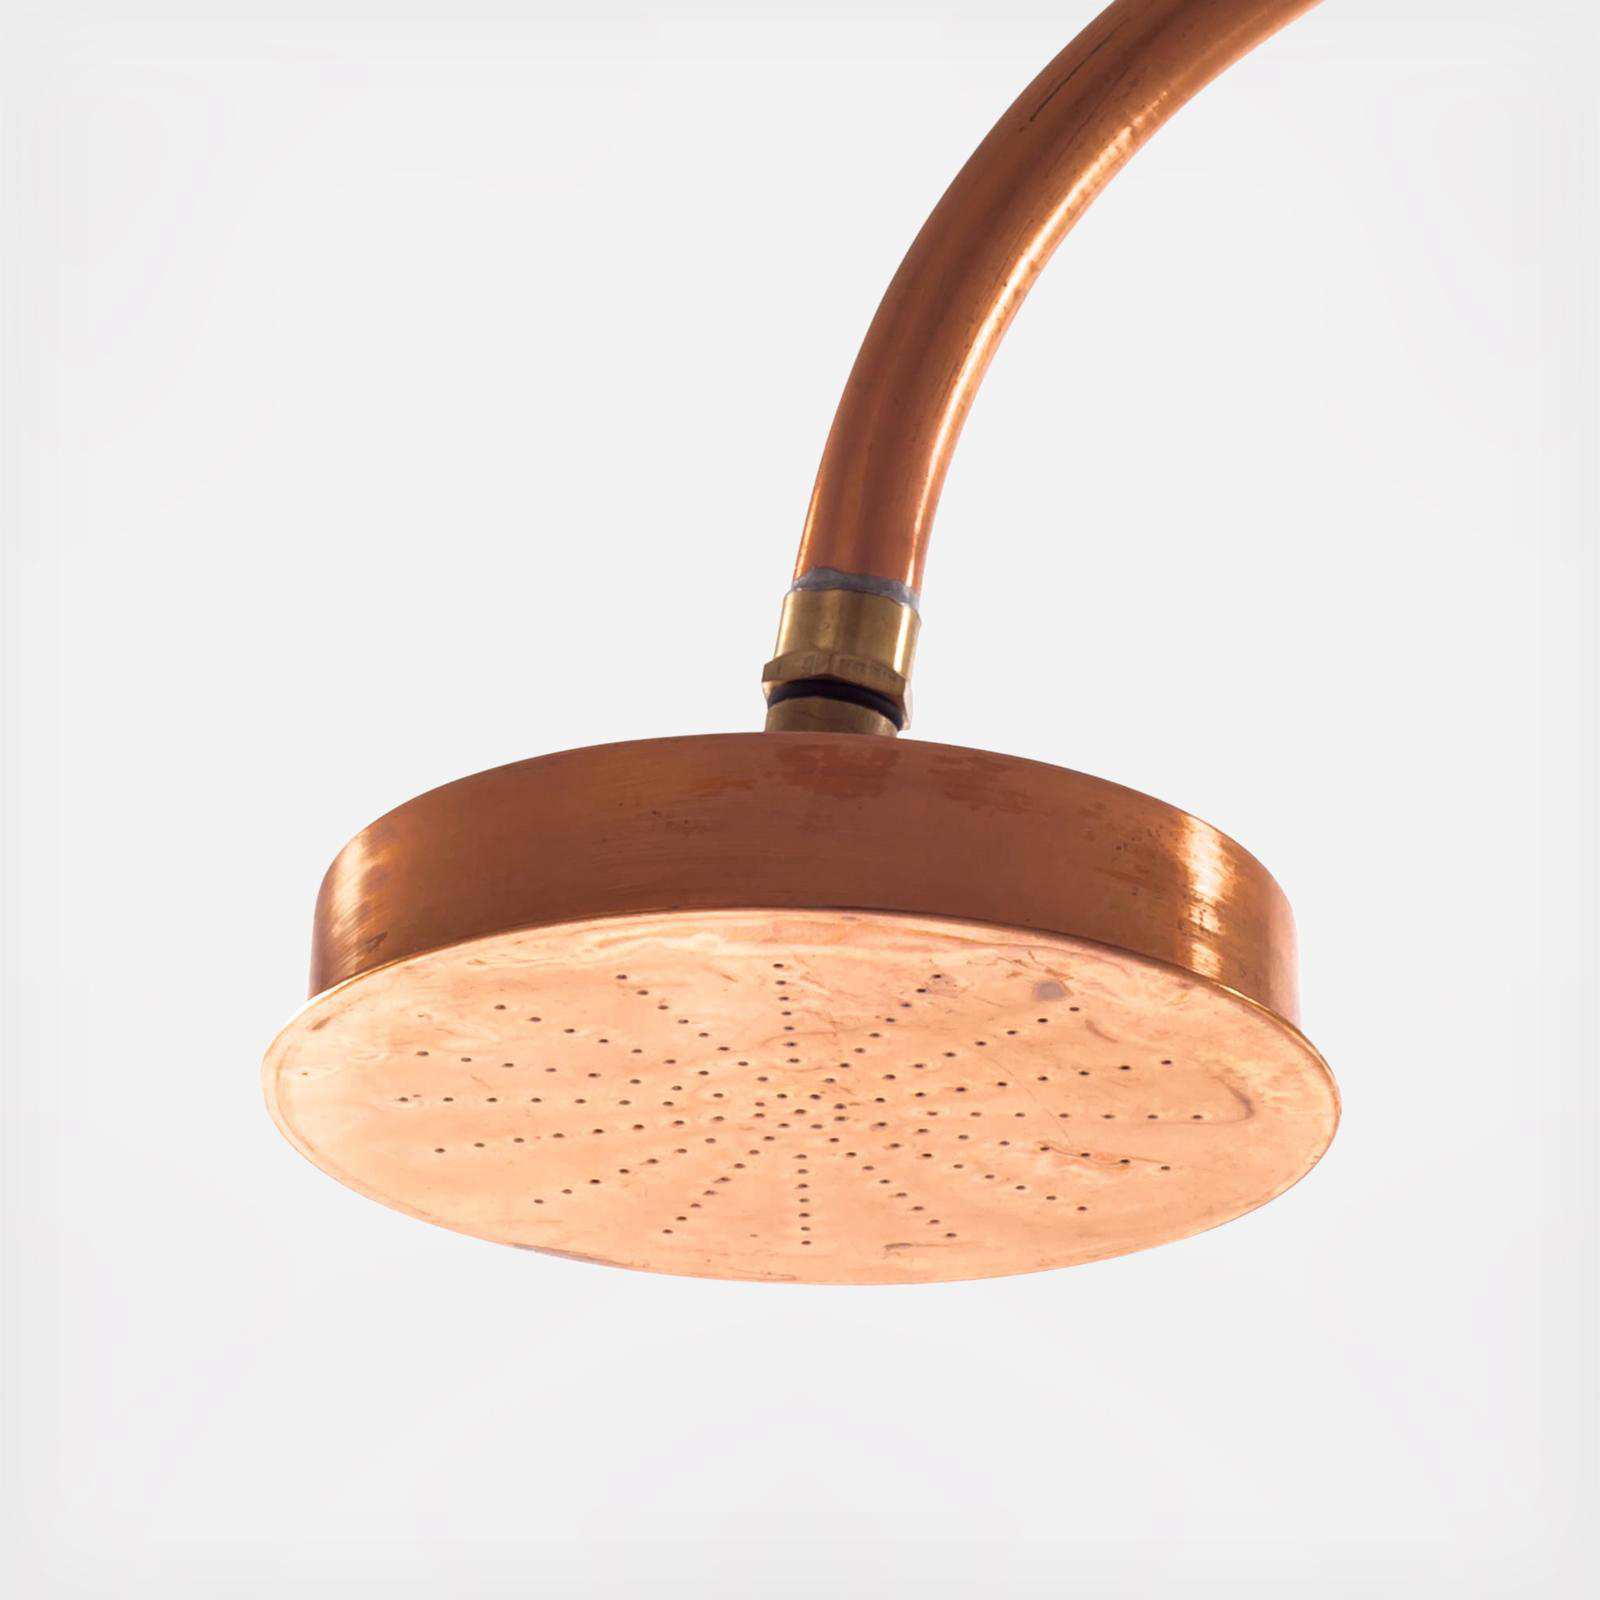 morning registry items seletti aquart lux copper shower head